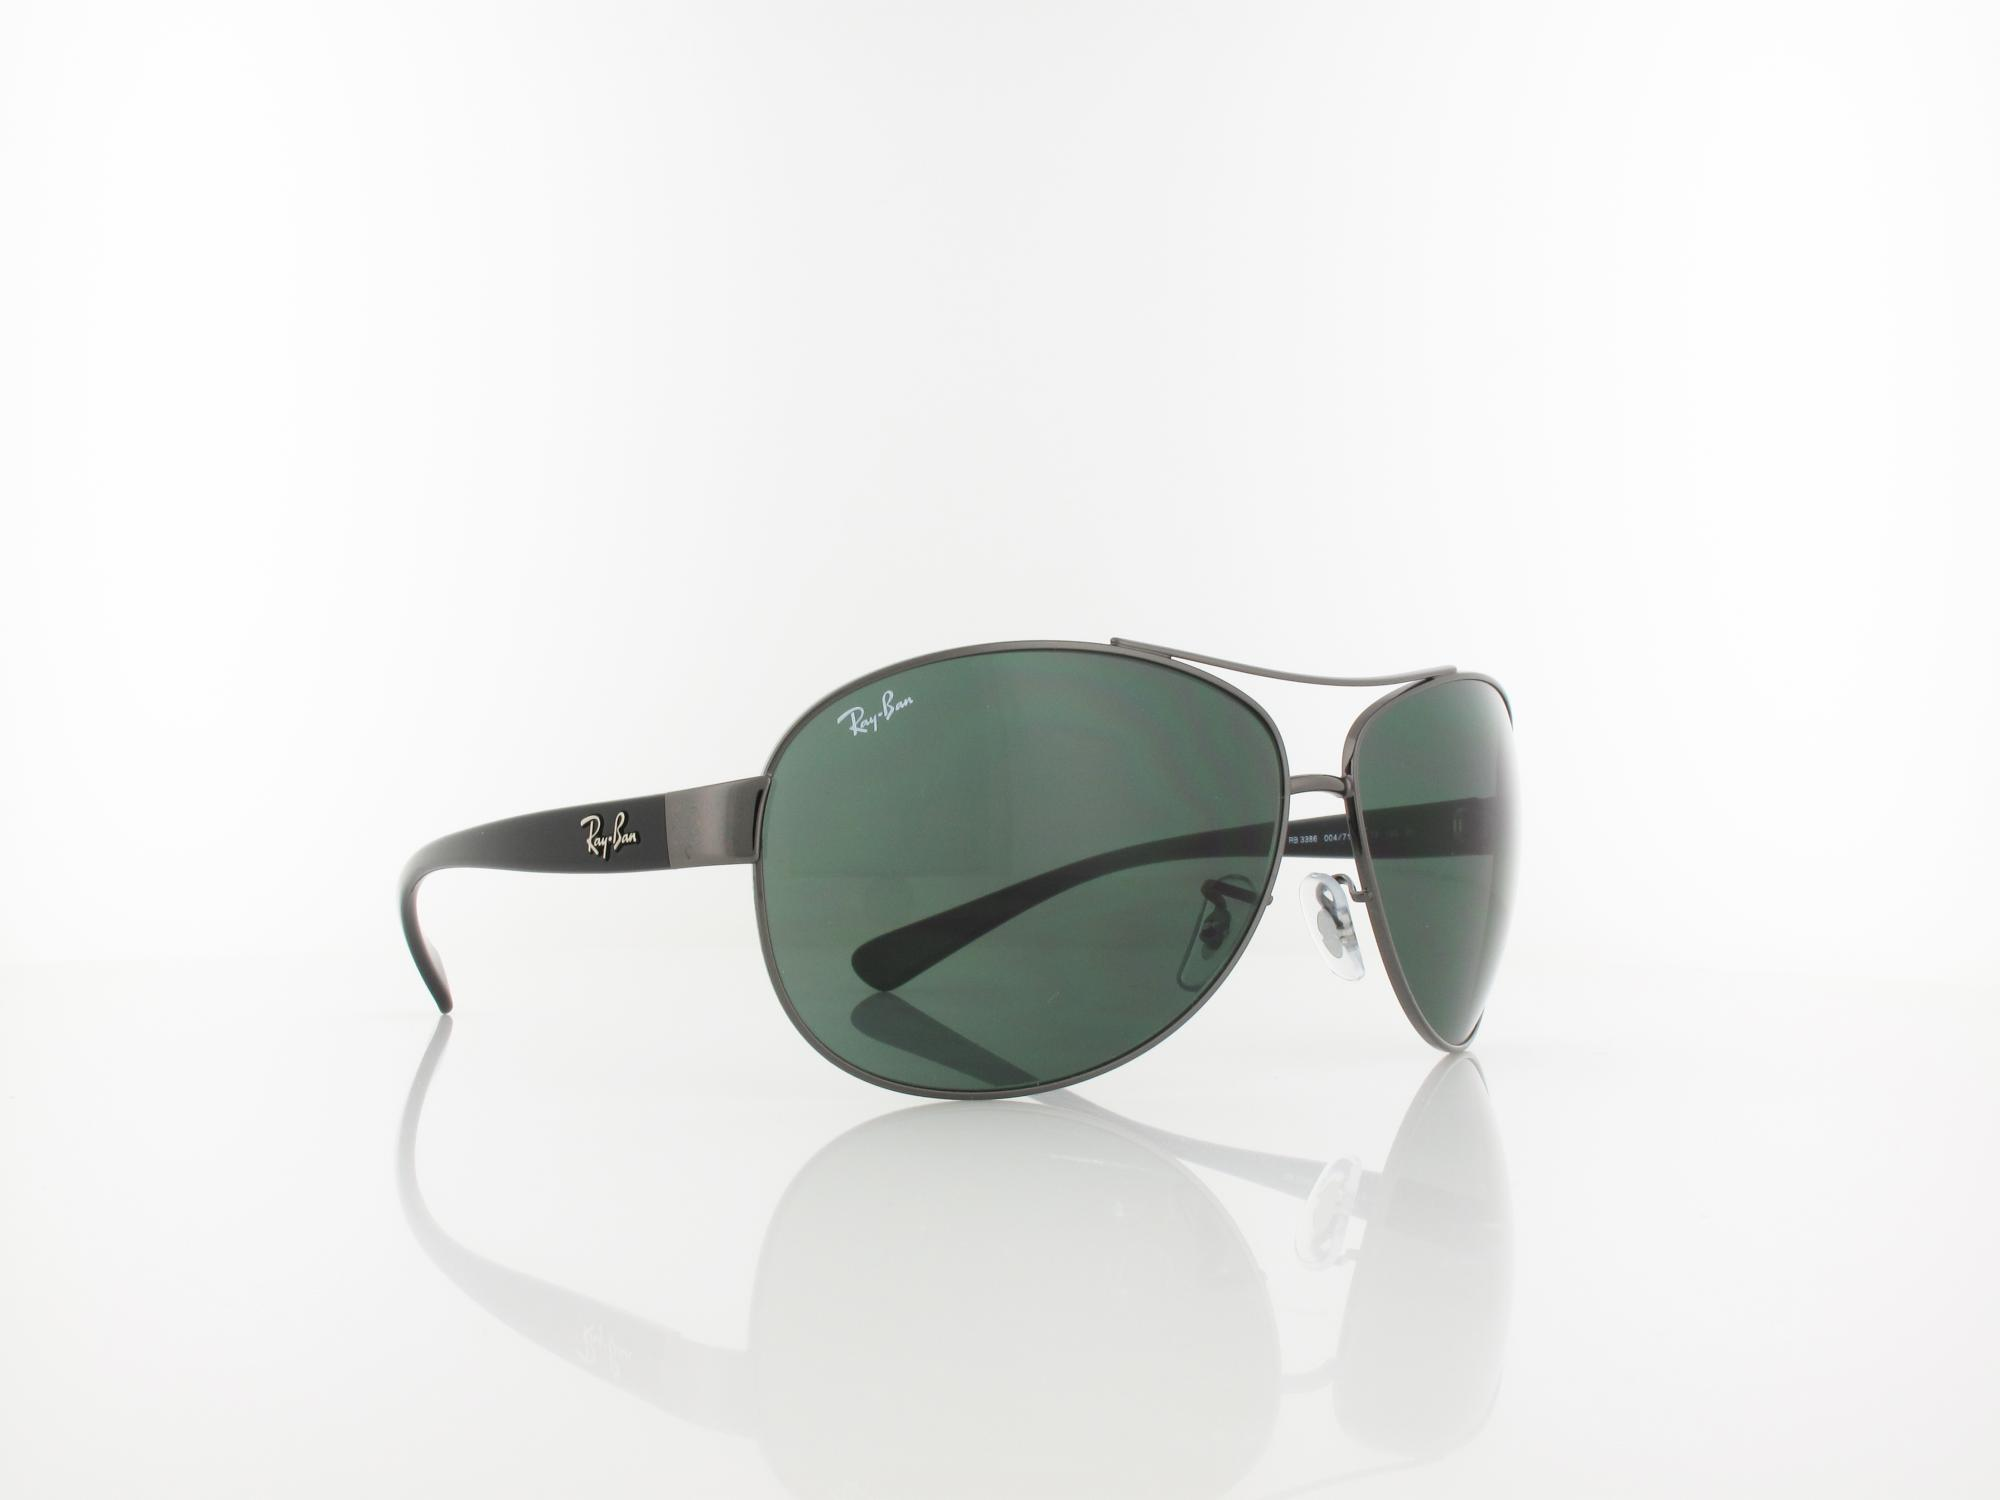 Ray Ban | RB3386 004/71 67 | gunmetal / green